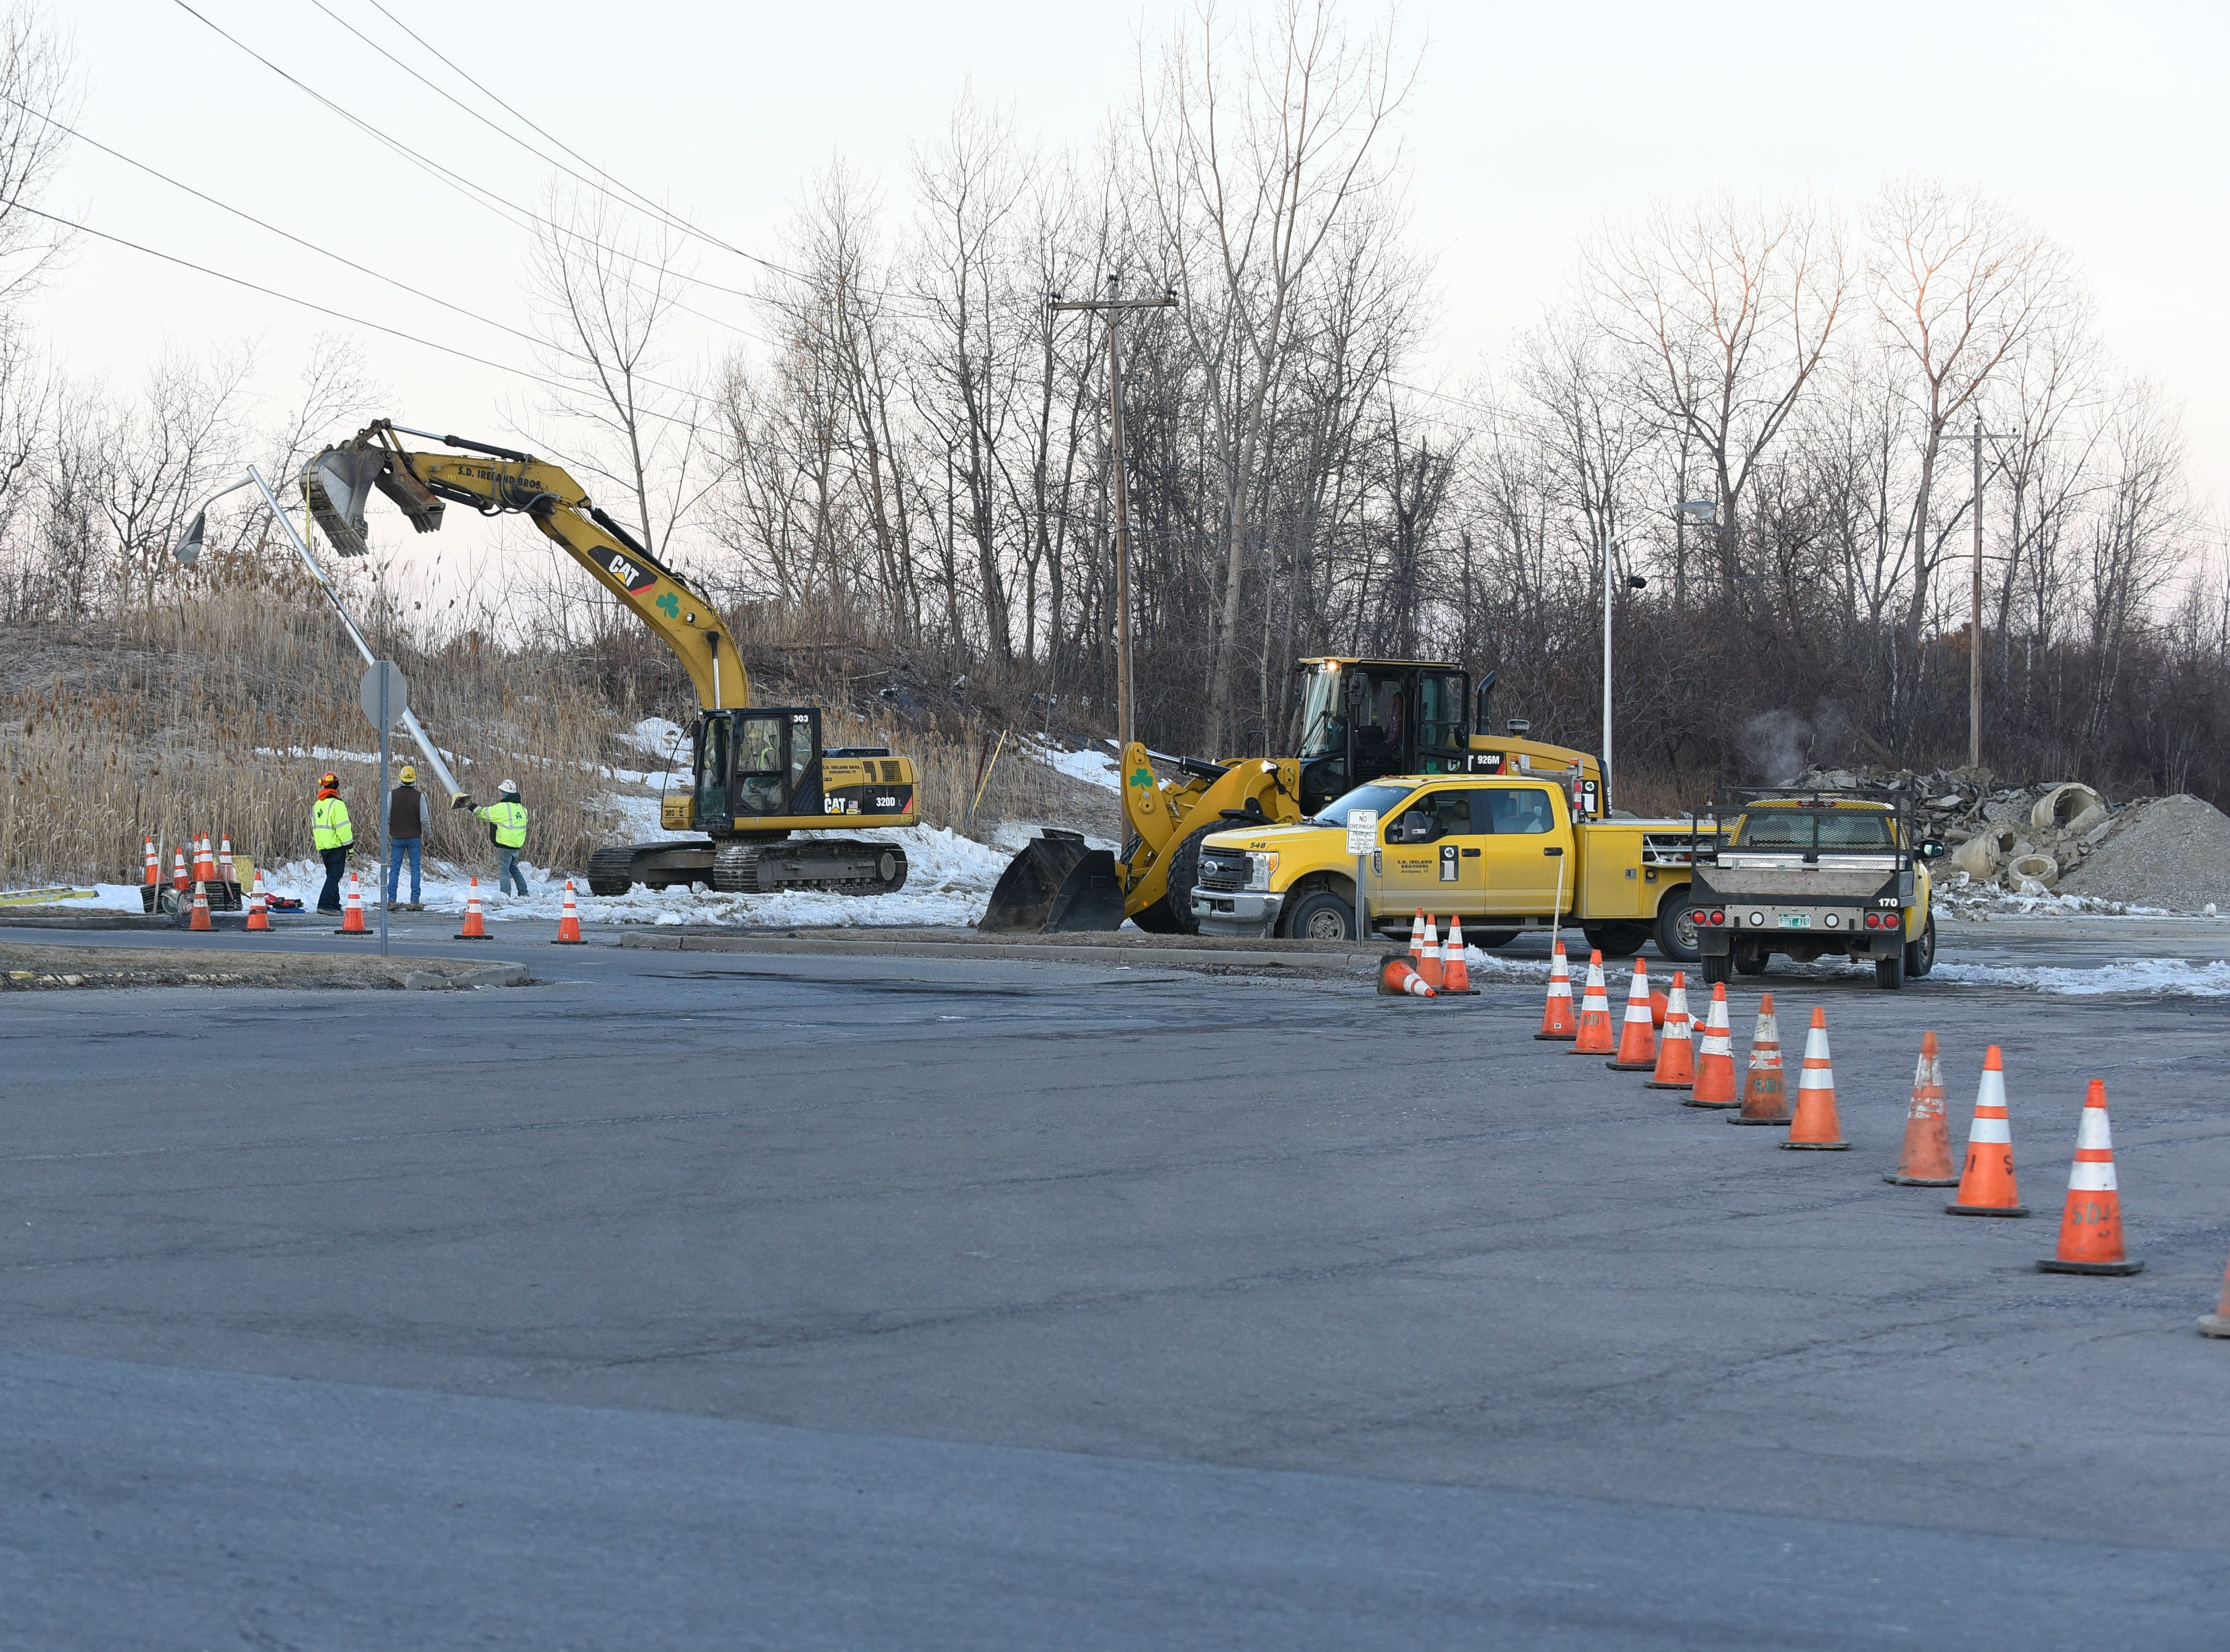 Orange cones close off the parking lot to the shopping center off of Shelburne Road in South Burlington that housed the Kmart as workers remove a lamp post on the morning of Wednesday, March 20, 2019. Work has begun at the empty shopping center to make way for a new Hannaford supermarket.